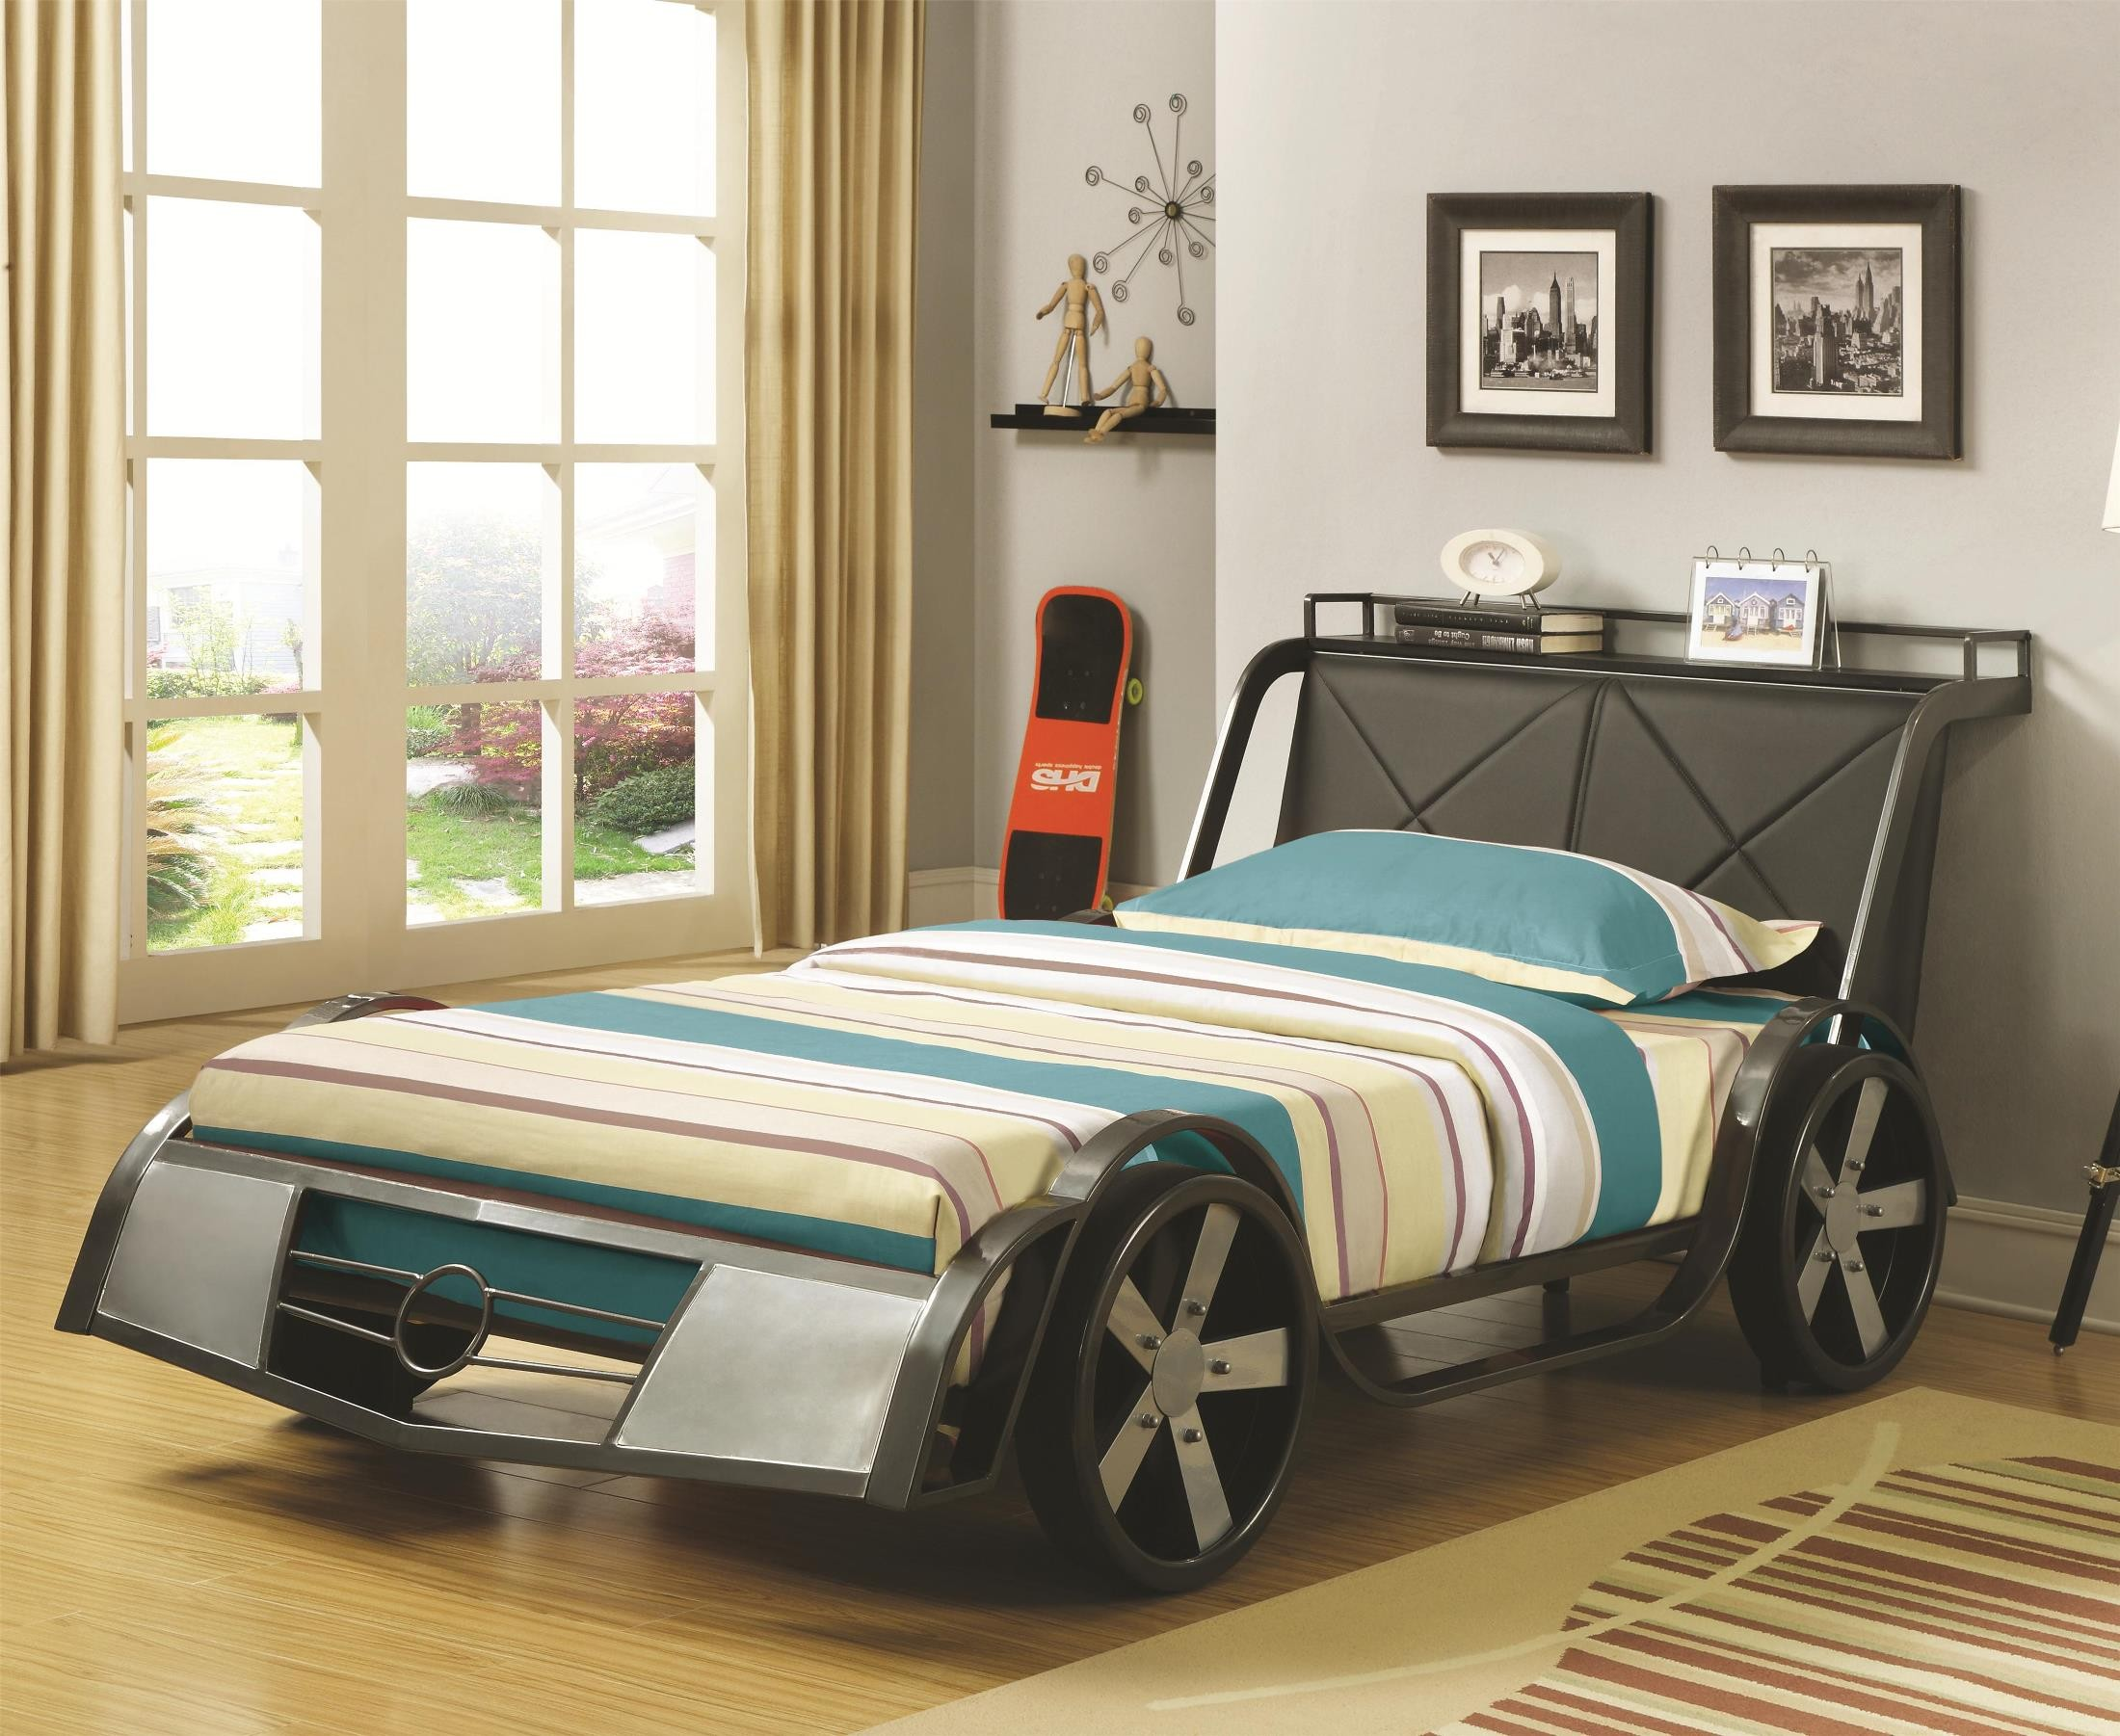 Race Car Twin Bed: Race Car Wood Veneers Twin Metal Bed From Coaster (400701